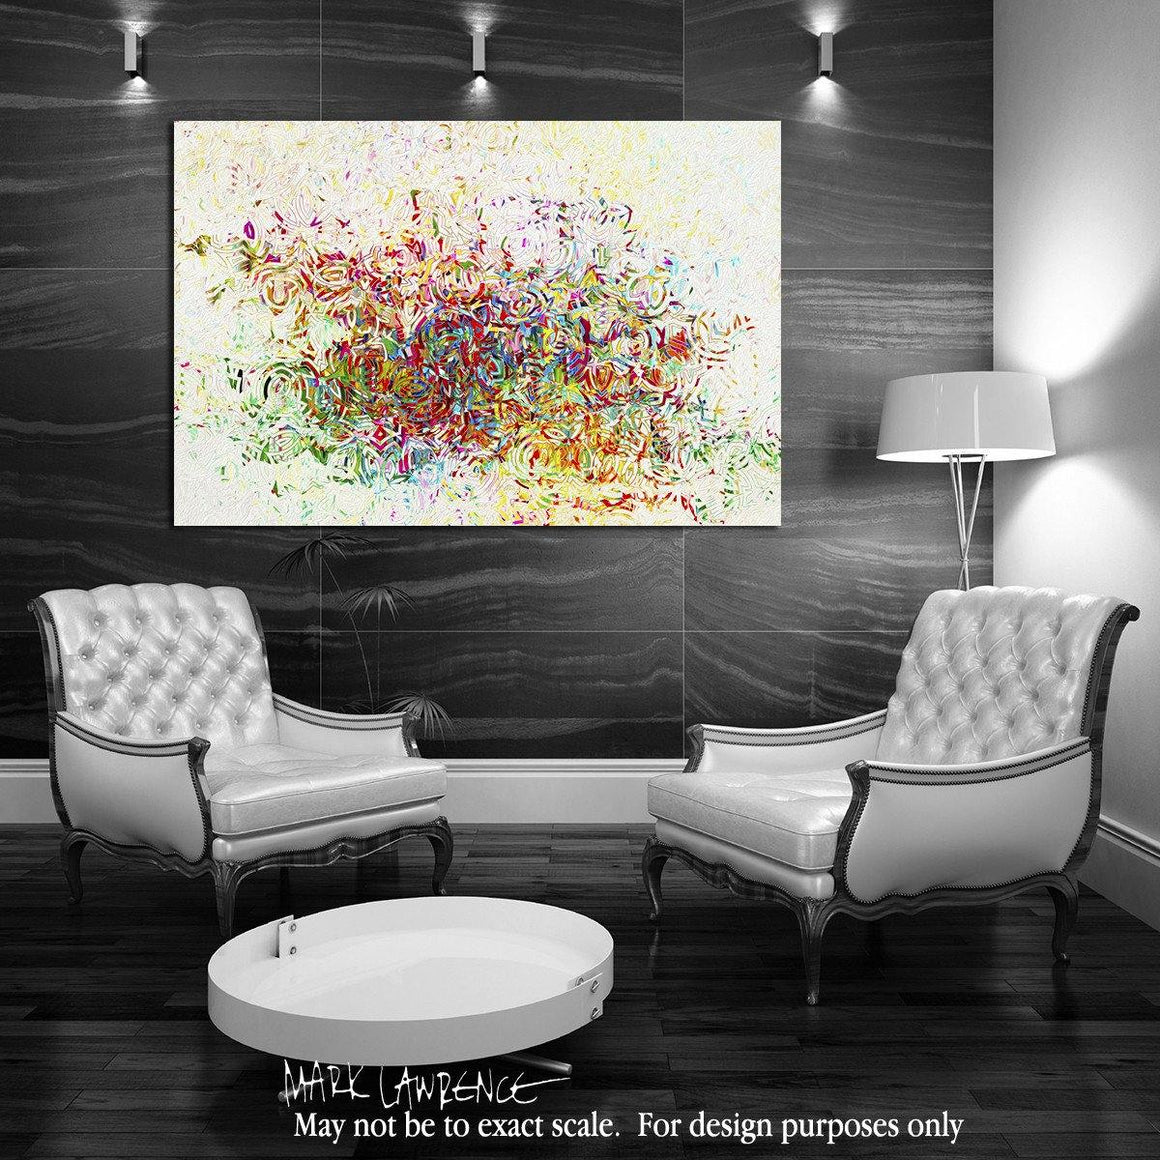 Interior Design Focal Point Art Inspiration- Christian Art-Isaiah 55:7. Versevisions contemporary abstract fine art by Mark Lawrence. Artist direct original limited edition signed canvas & paper giclees